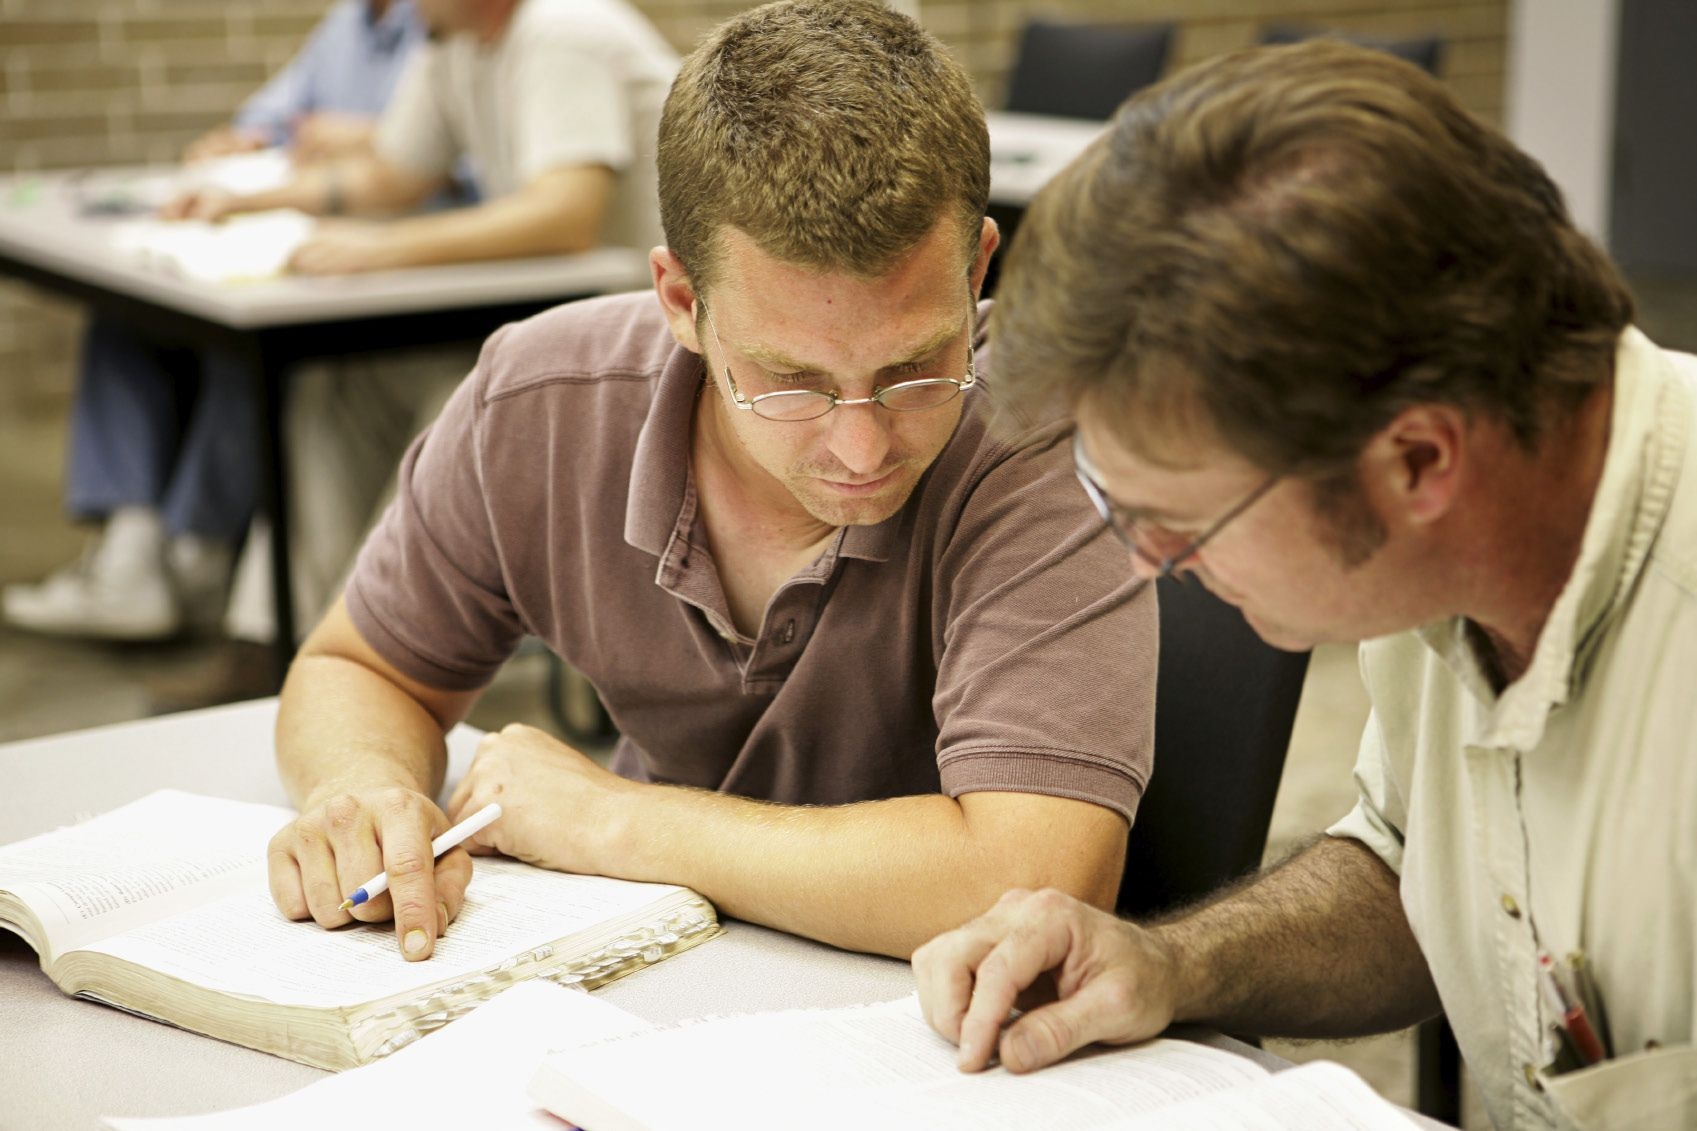 You must to get good marks in all subjects you can get